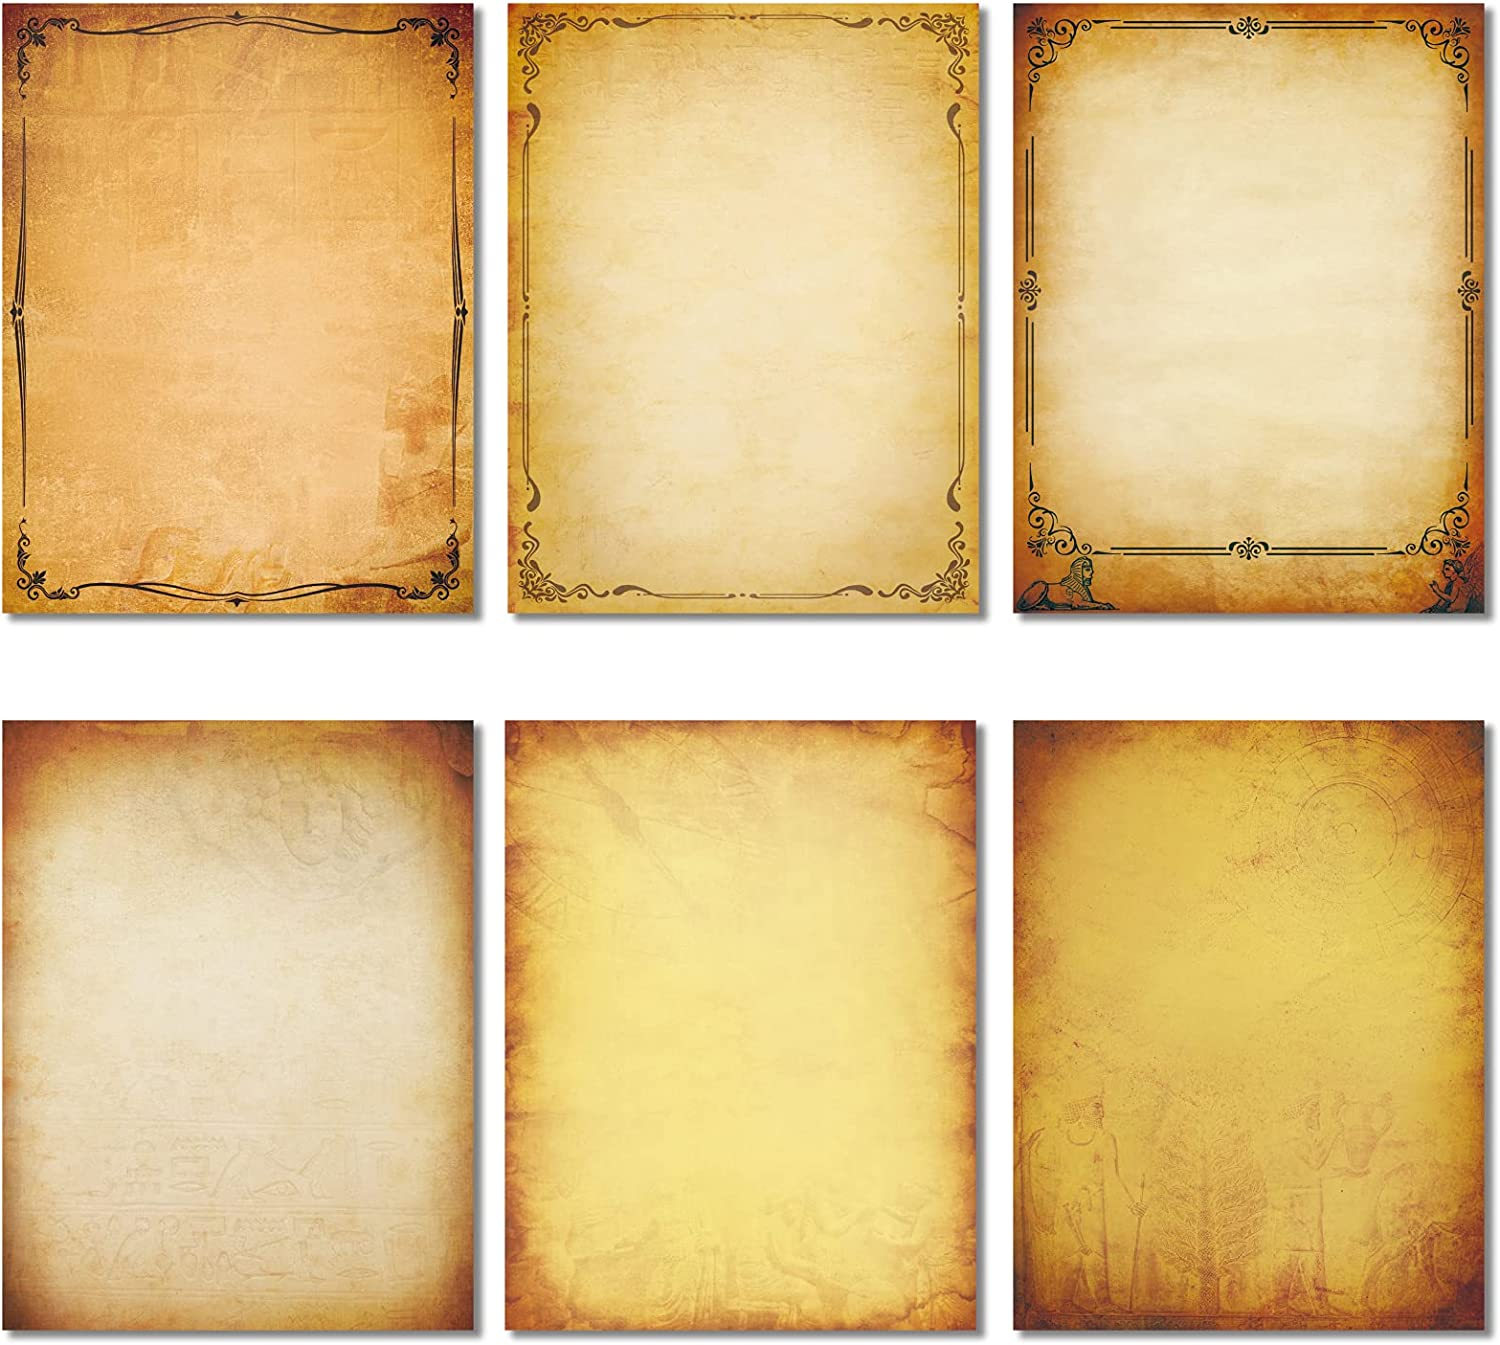 """Realistic Vintage Stationery Paper 102 Pieces - 32lb / 120gsm Heavy Weight Writing Stationary 8.5"""" x 11"""", 6 Antique Parchment Design, Printer Friendly, Both Sides Printed, Old Looking : Office Products"""